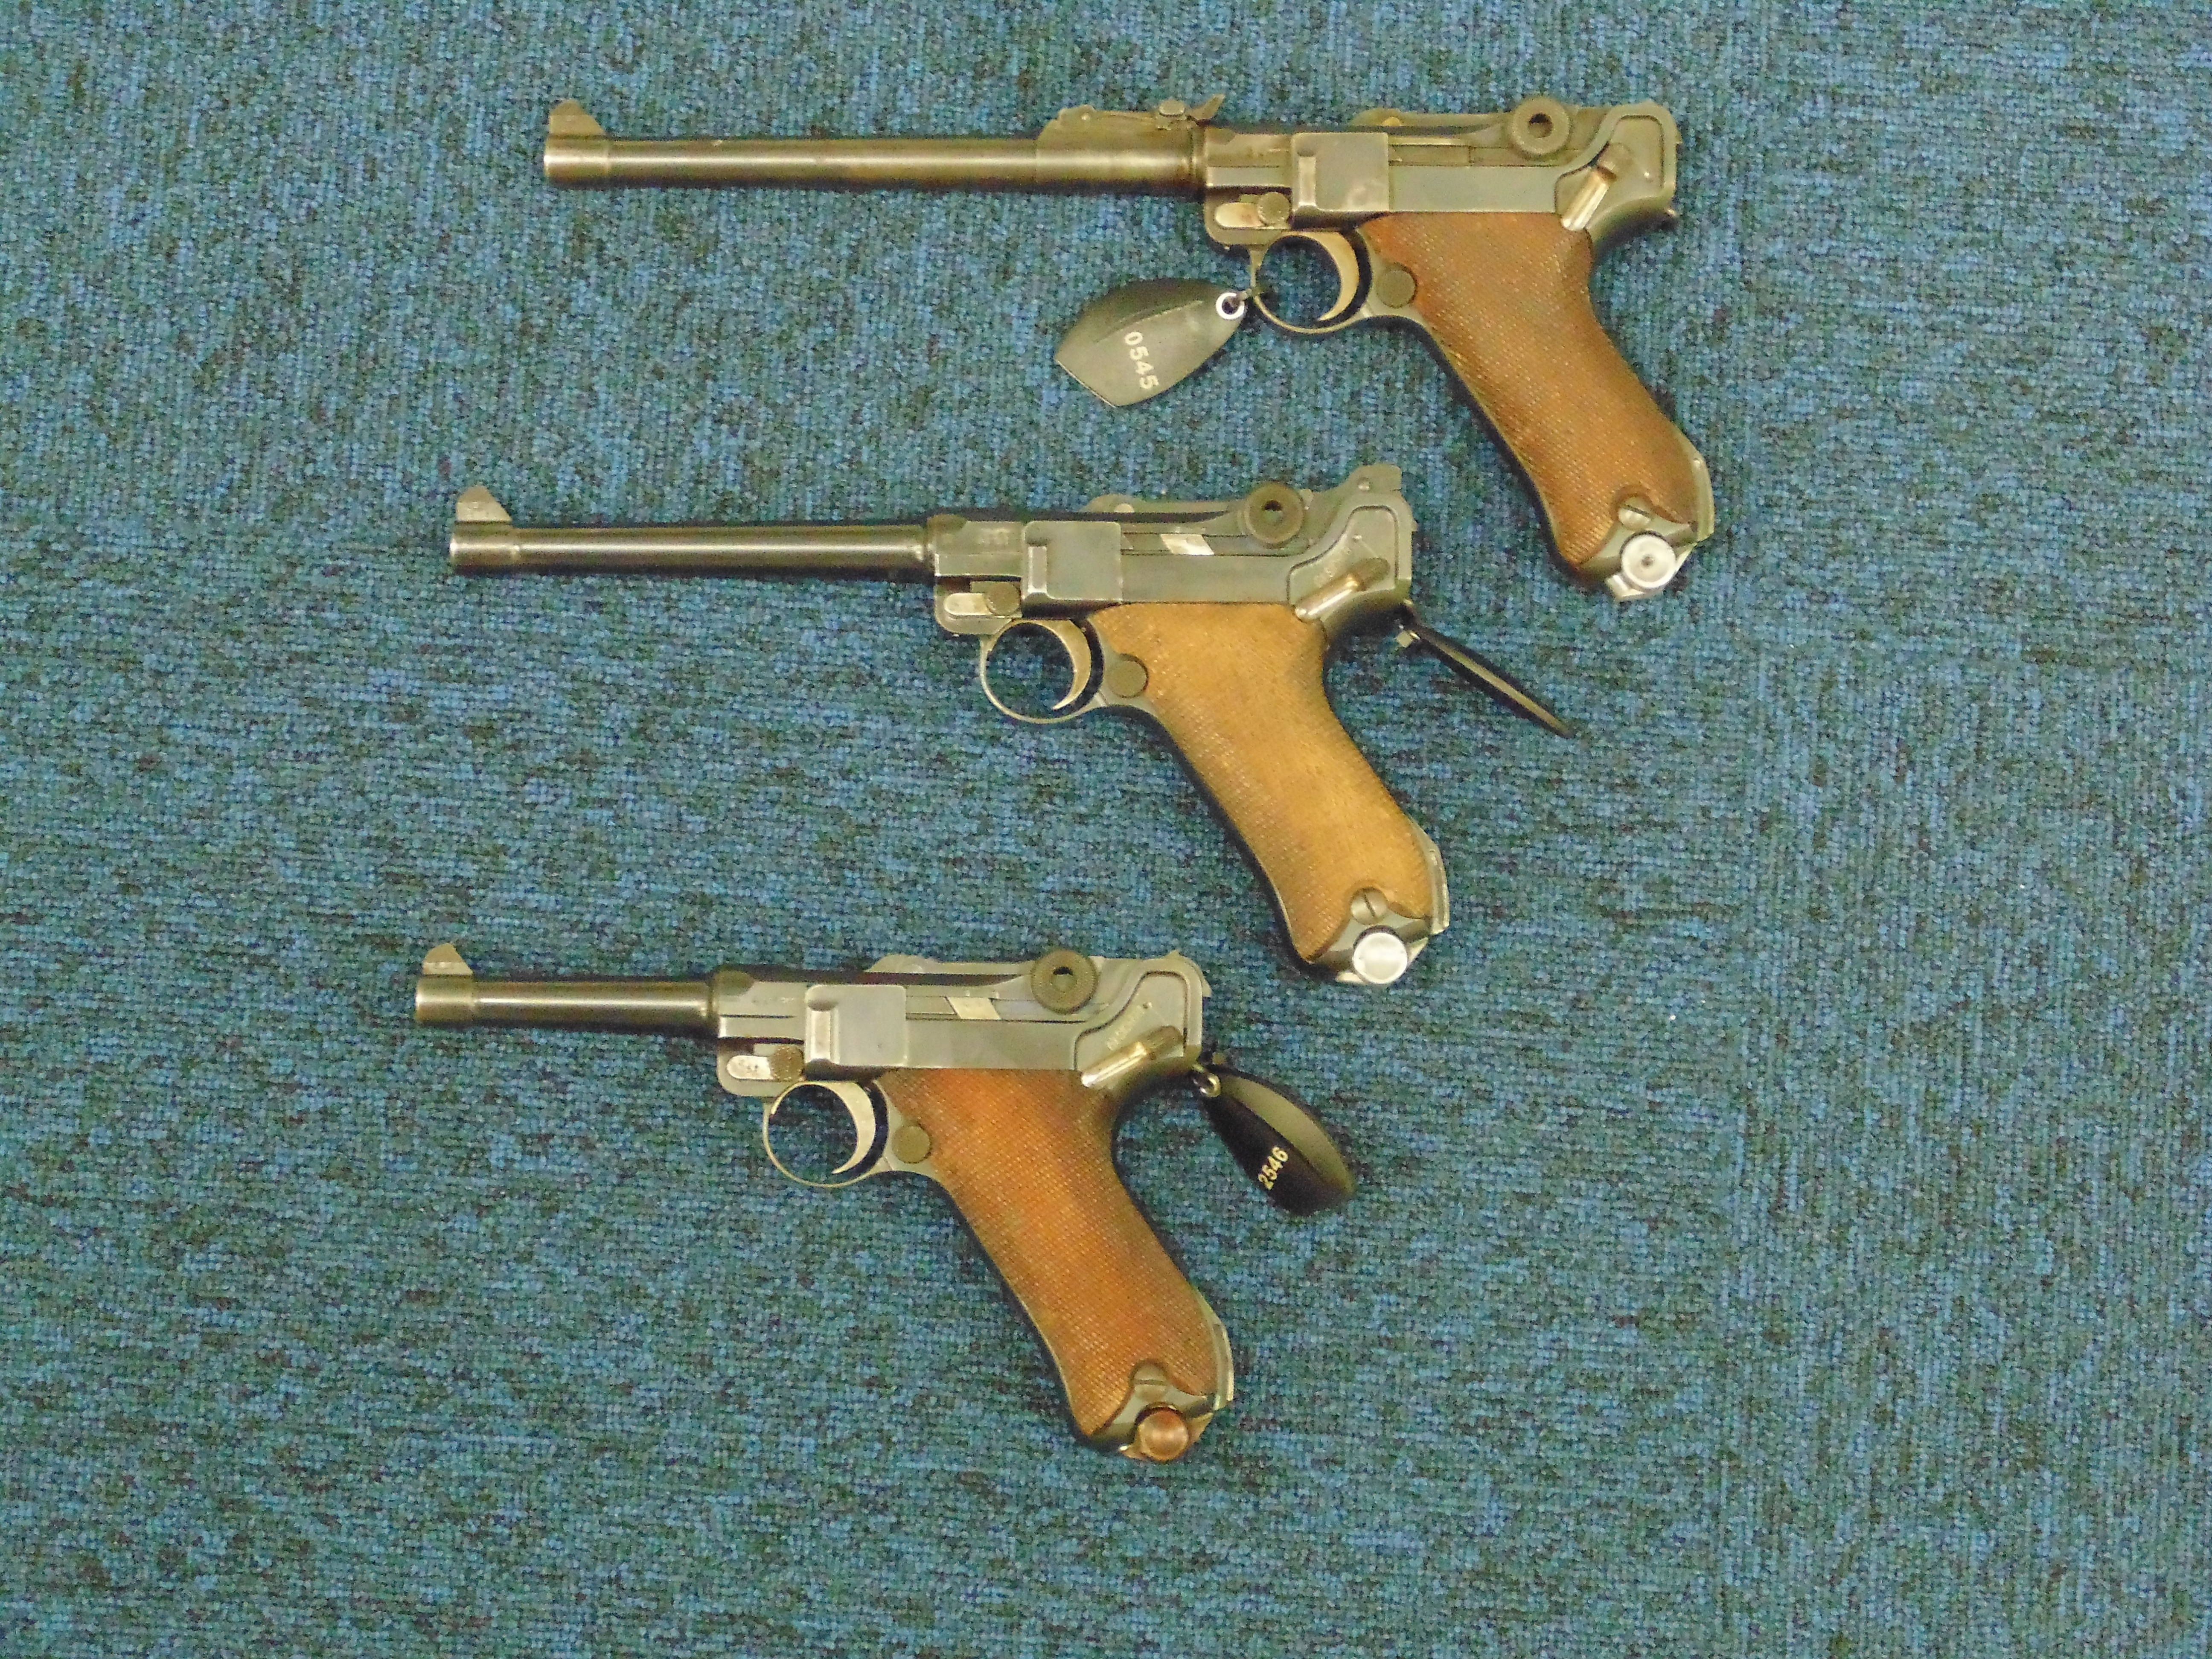 - German service Lugers - the 100mm P08, the 150mm Naval P04 and the 200mm Lange Pistol 08.